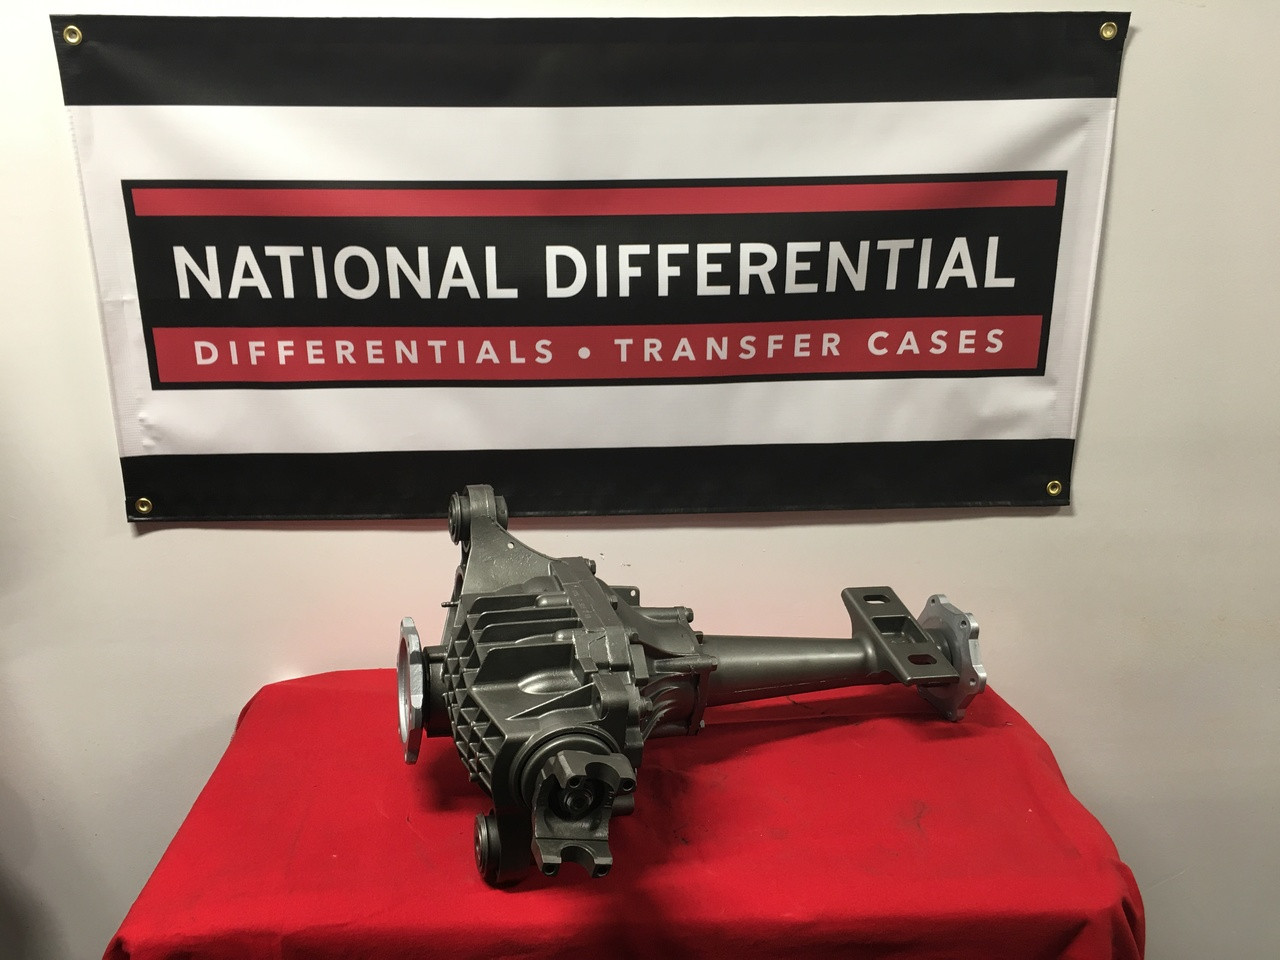 8.25-inch Front Differential for 1999, 2000, 2001, 2002, 2003, 2004, 2005, 2006 Chevrolet Silverado 1500 Pickup Truck available with a 3.42, 3.73, or 4.10 gear ratios